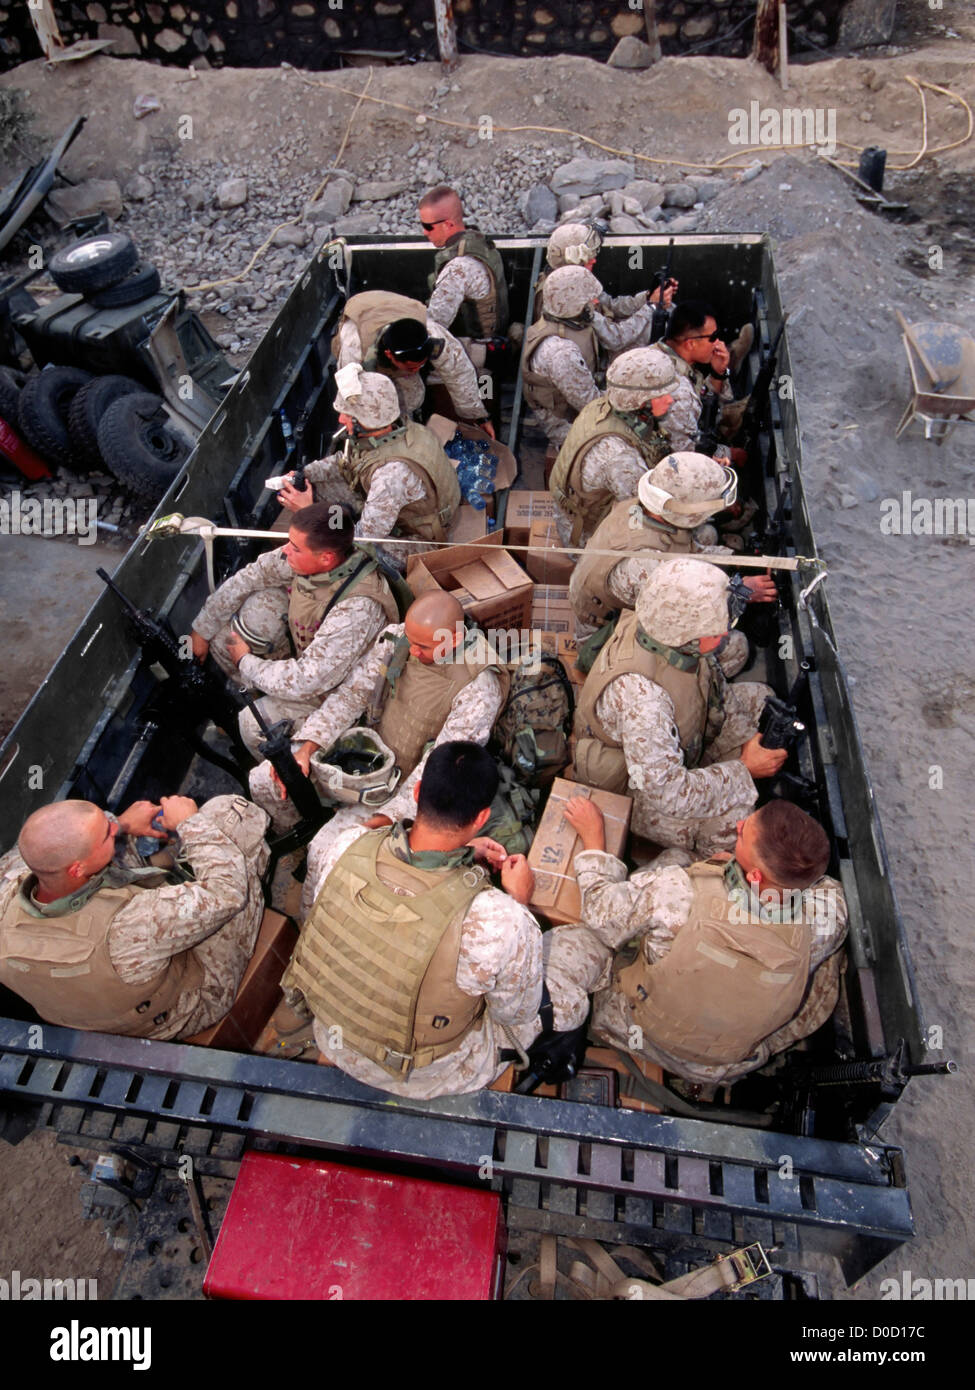 US Marines Loaded into a Large Troop Transport Before Embarking on a Combat Operation in Afghanistan's Eastern - Stock Image